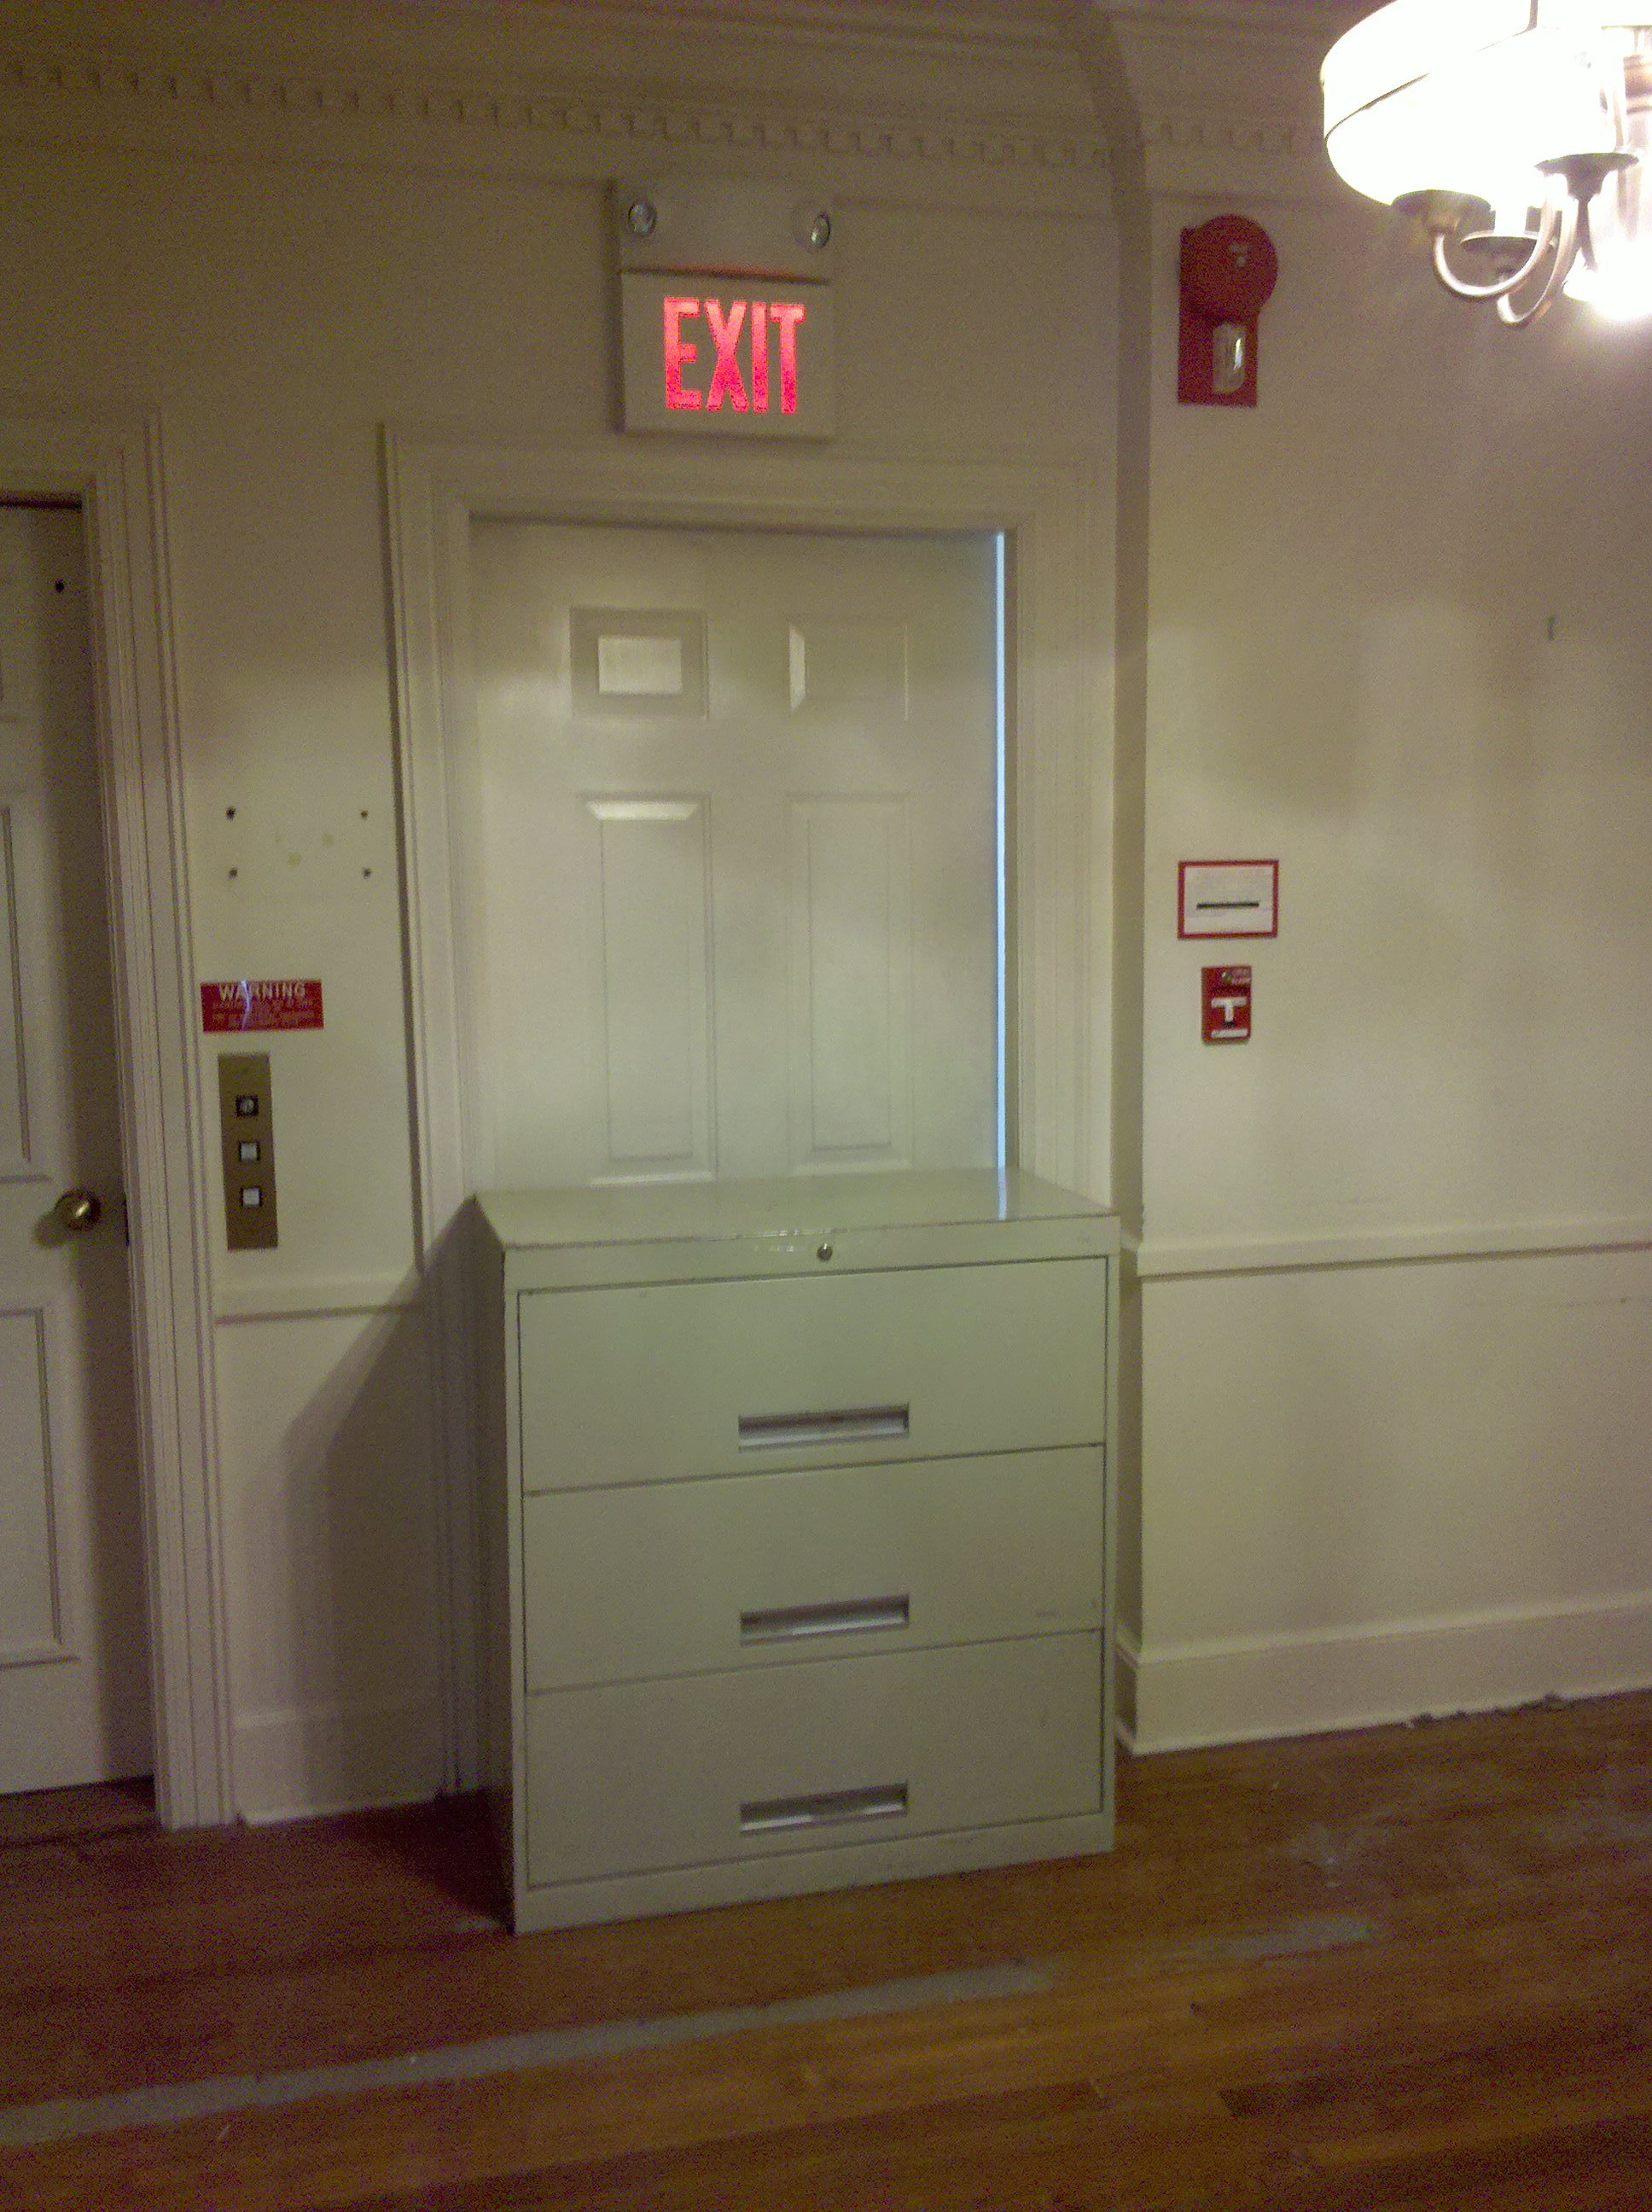 Used Cabinets For Sale >> The Schumin Web » The FCDC furniture sale was quite revealing in more ways than one…